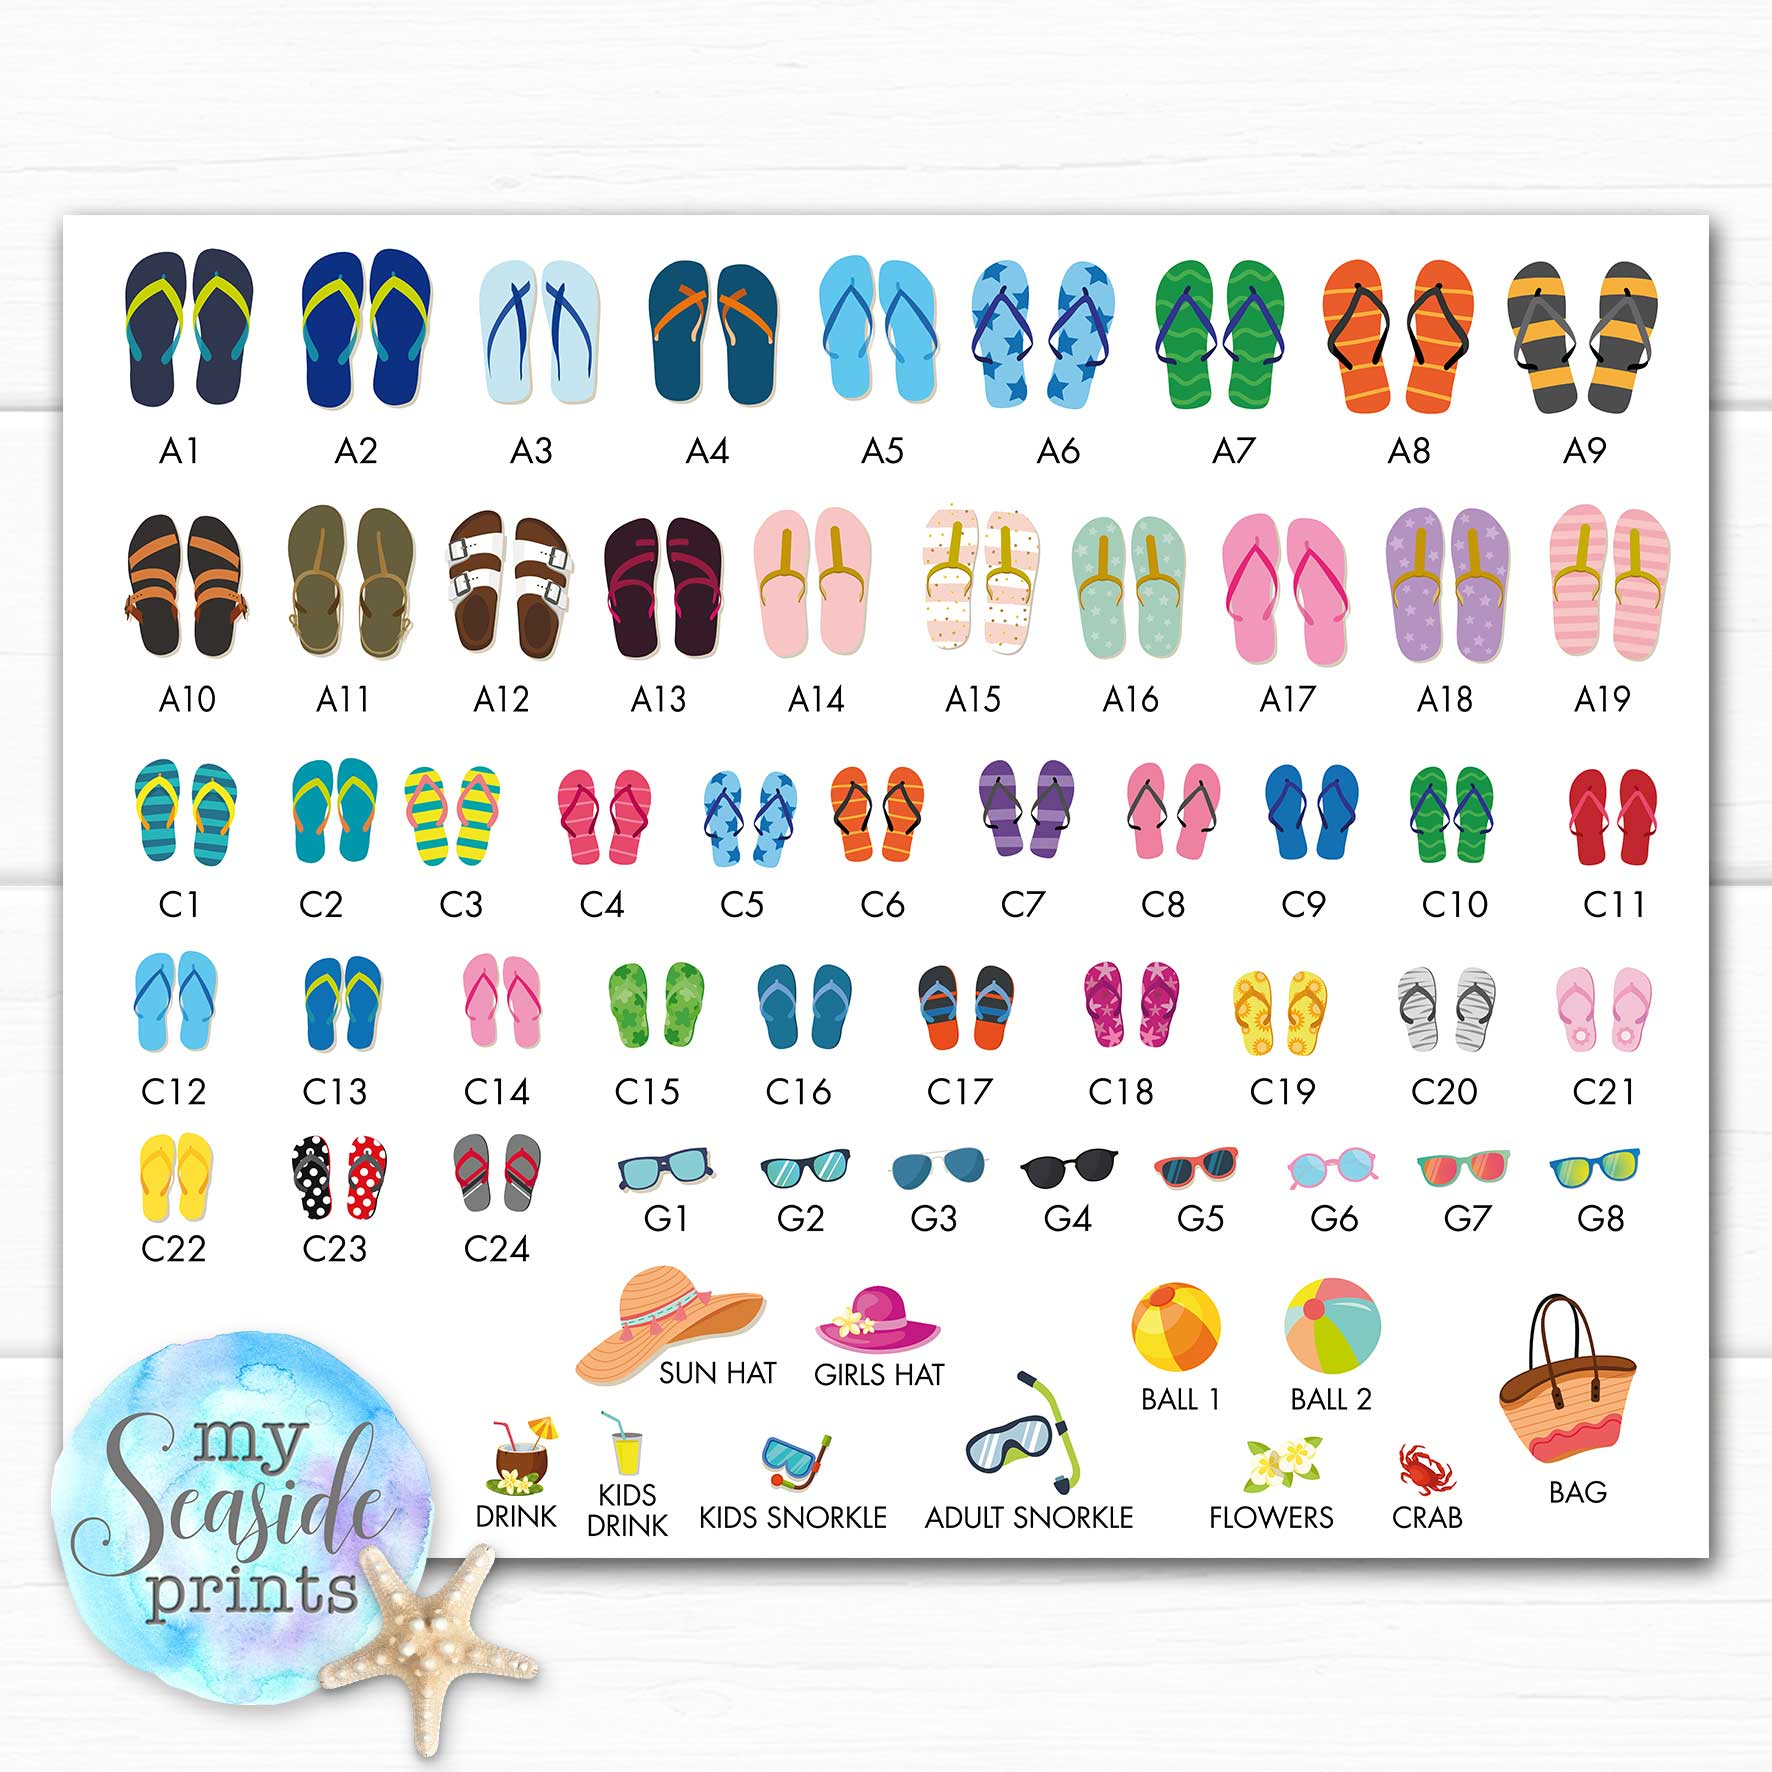 ae403b00496126 contact sheet for flip flip choices for family flip flops personalised print